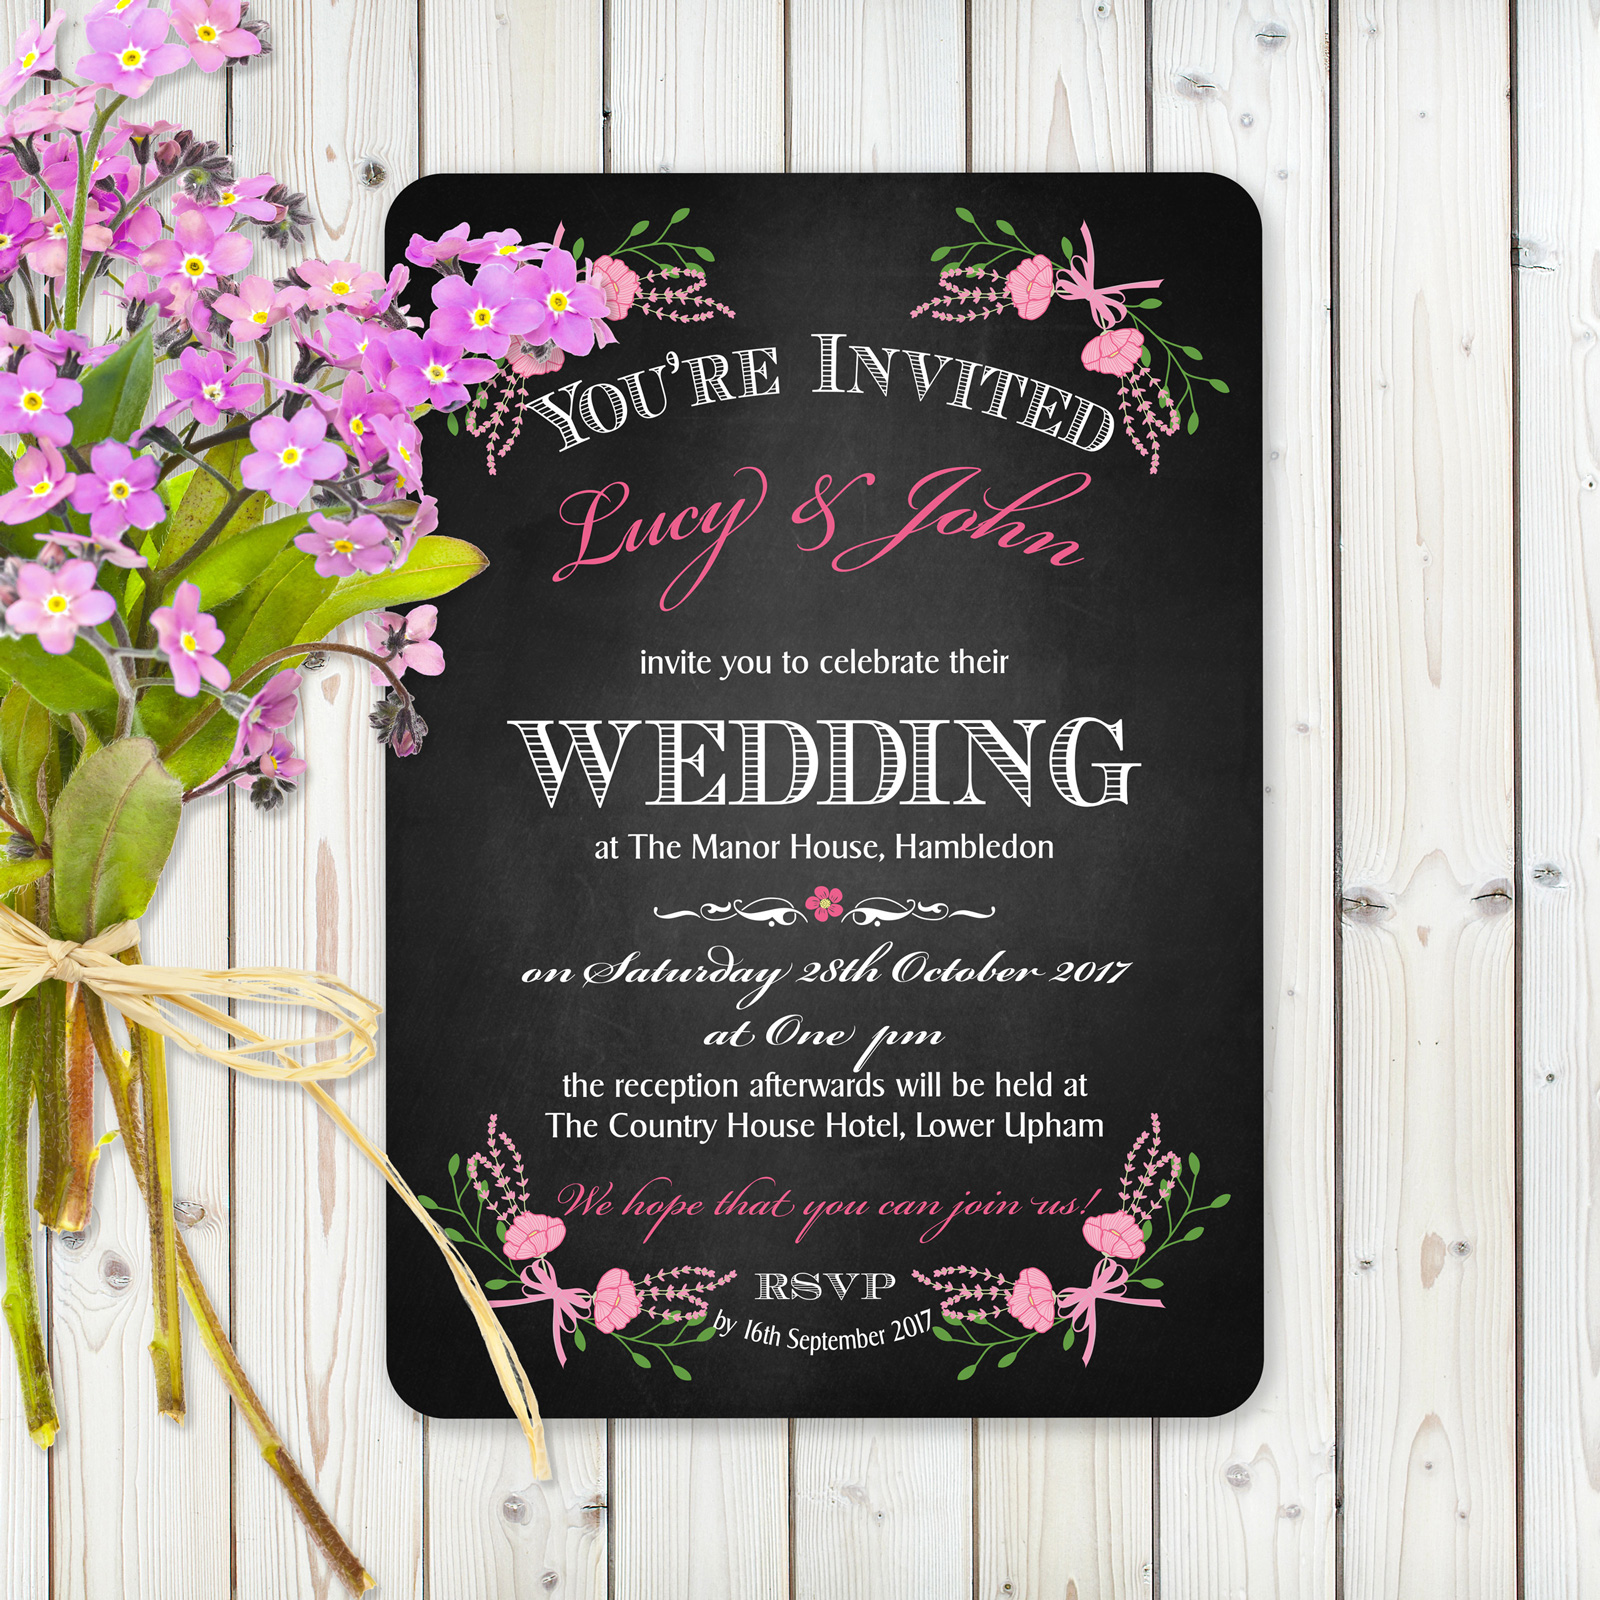 Floral Fantasy Pink on Chalkboard - Day Invitation